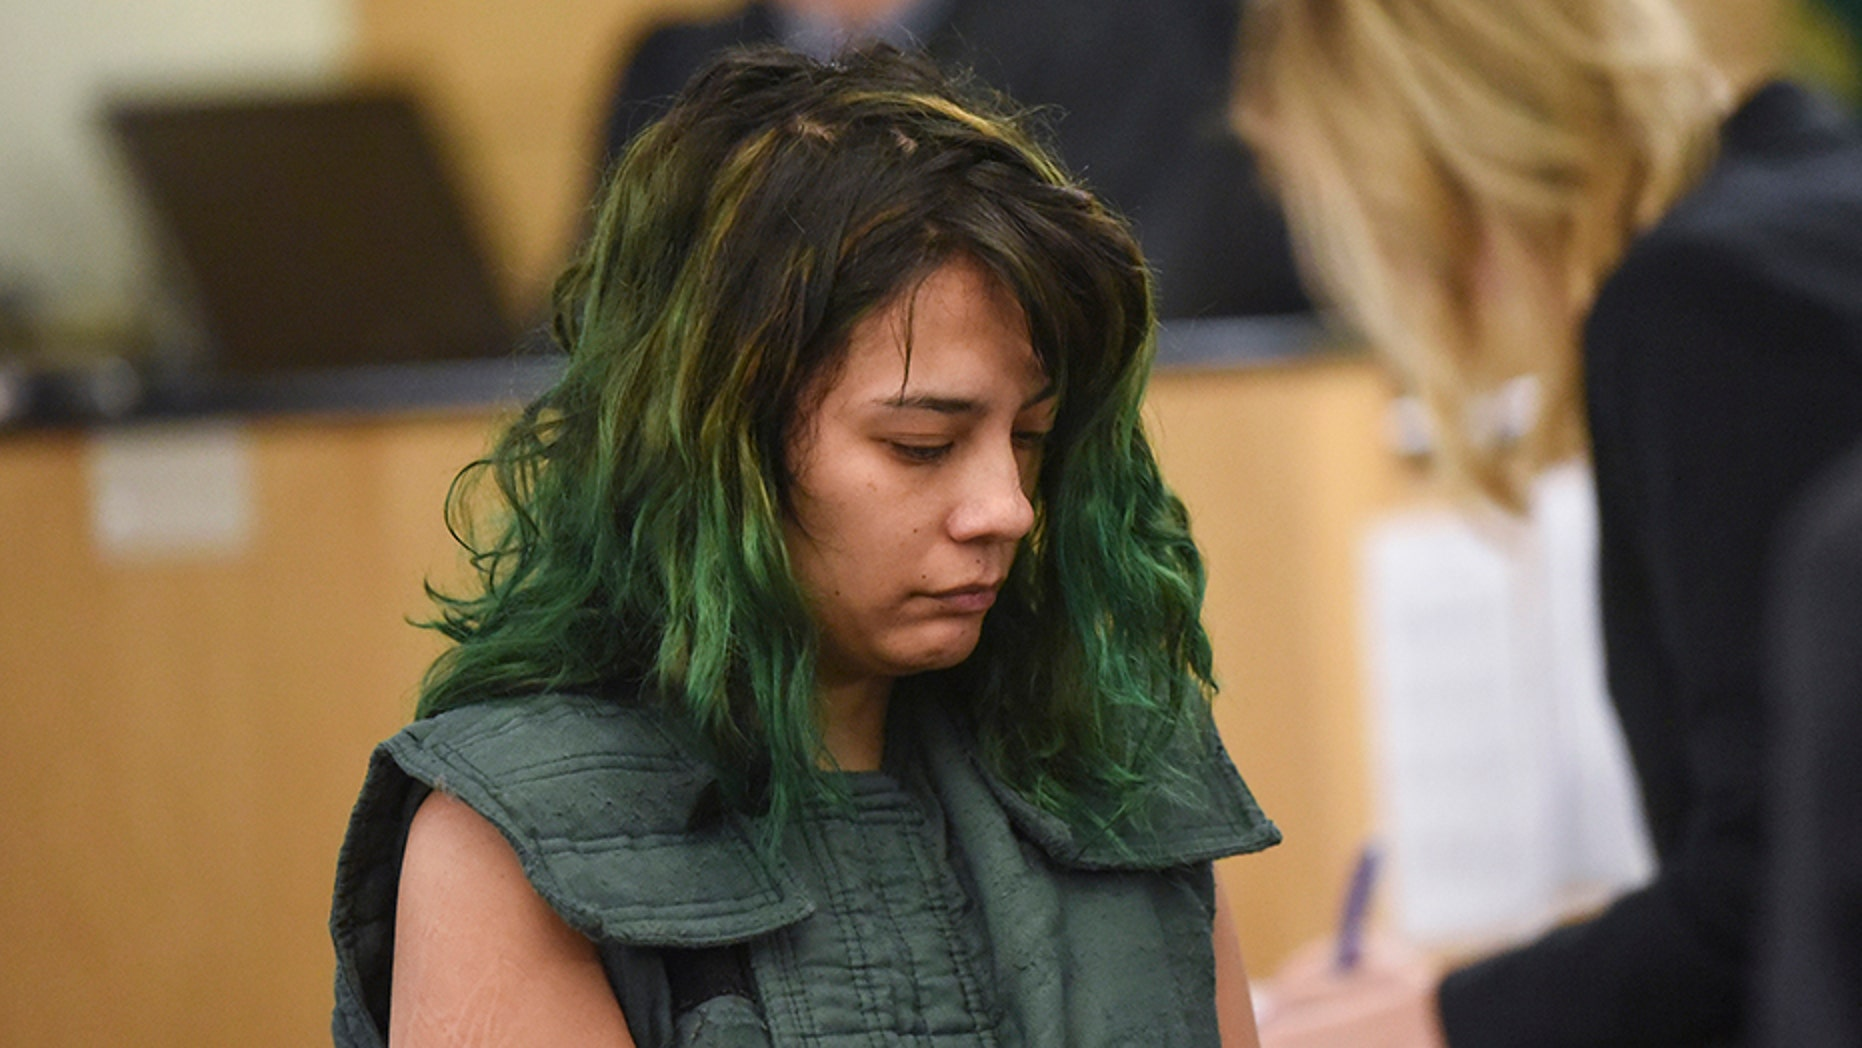 March 5: Emily Javier of Camas, Wash., makes a first appearance in Clark County Superior Court